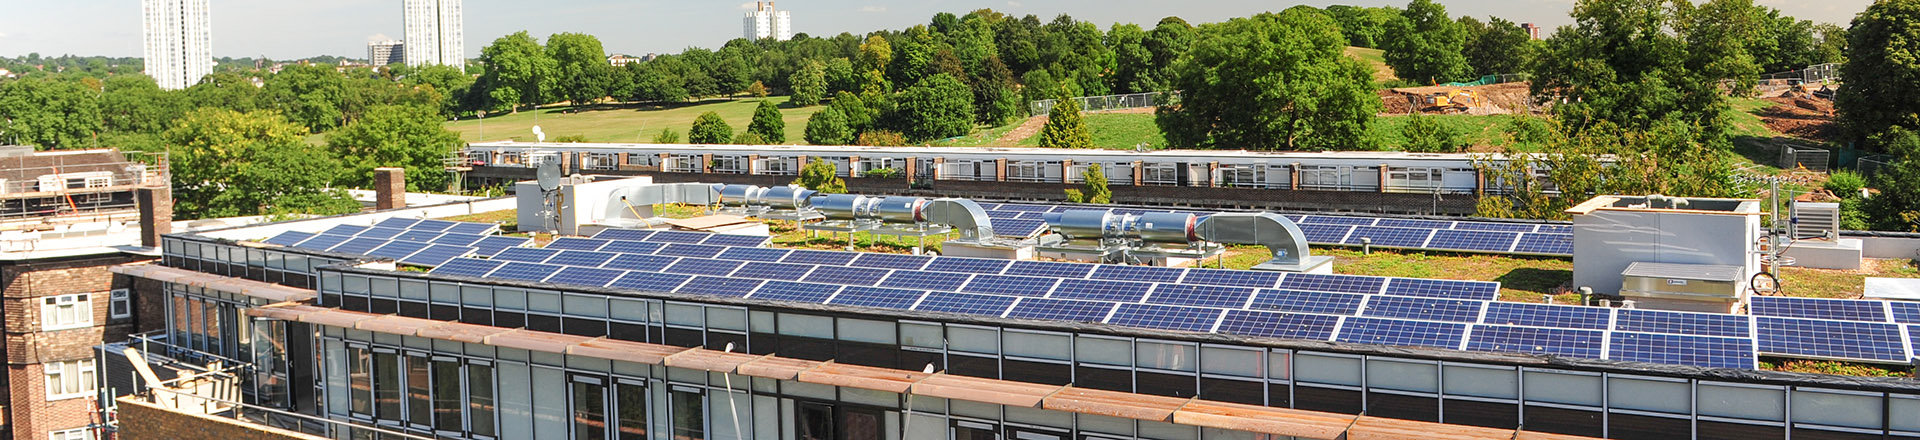 Solar panels on the roof of Guinness Court